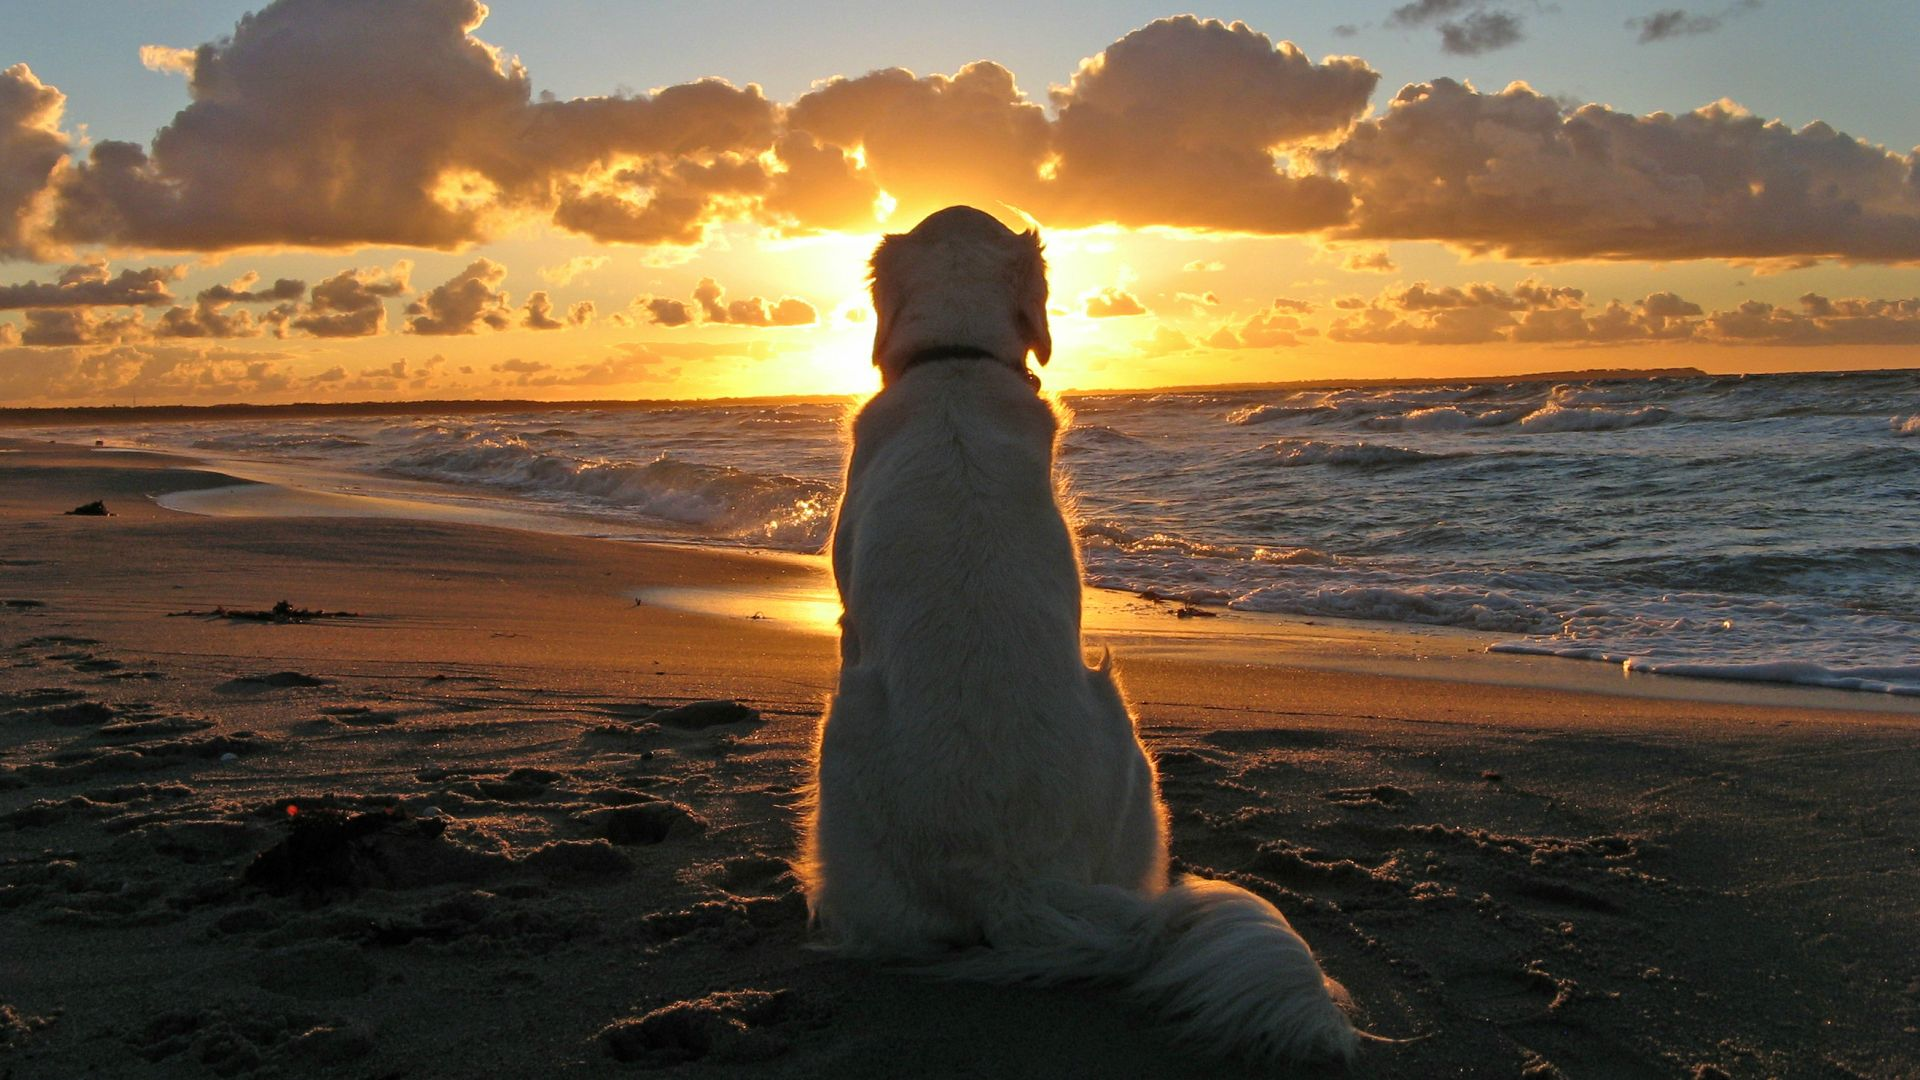 dog-sunset-wallpaper | UberFacts